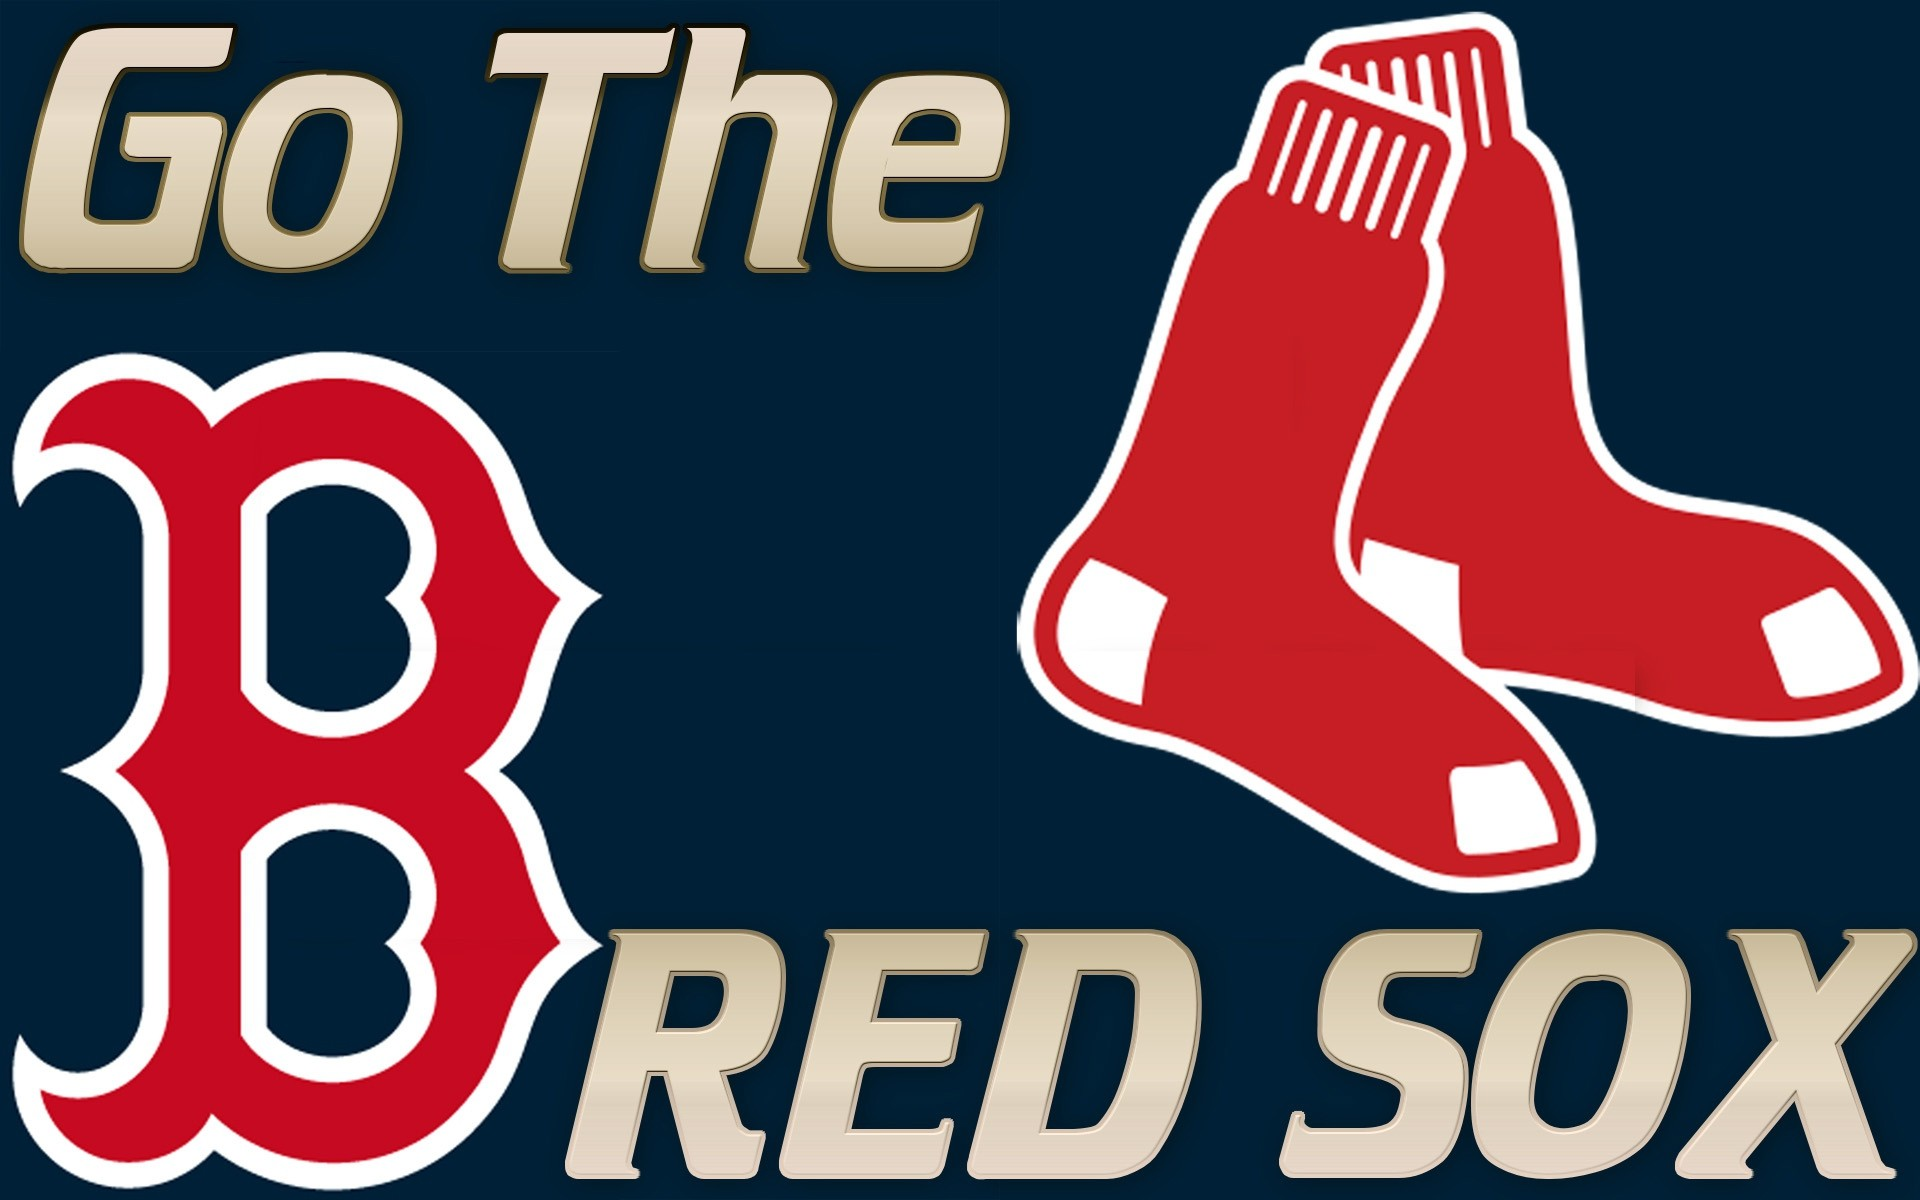 … boston red sox wallpapers images photos pictures backgrounds …